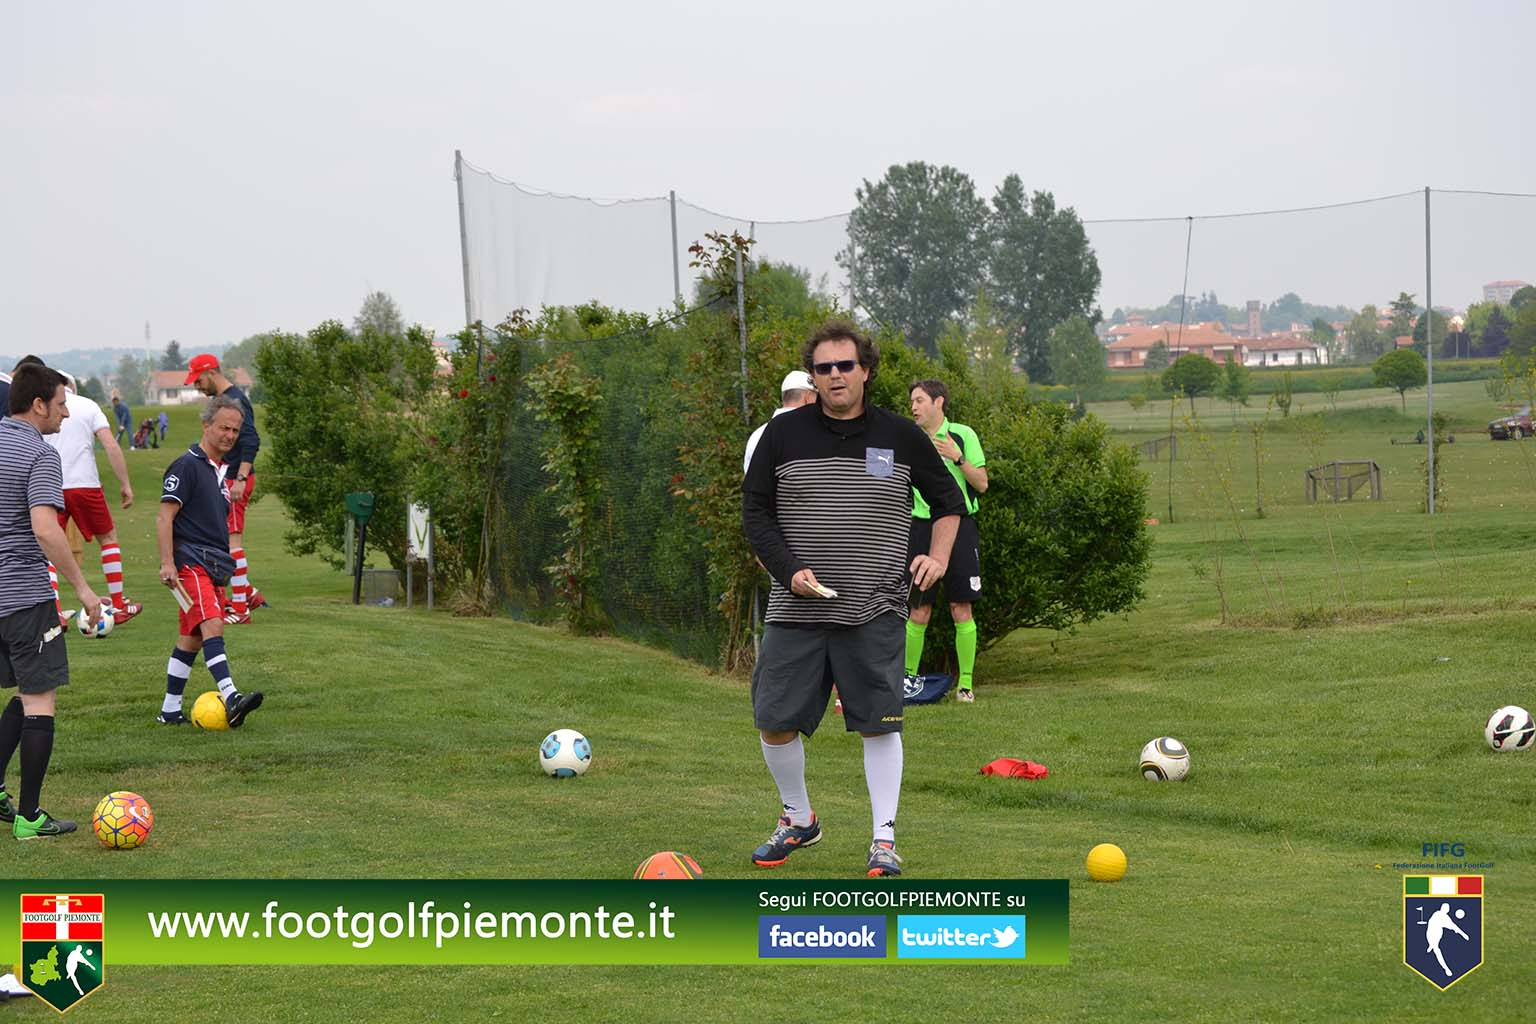 FOTO 9 Regions' Cup Footgolf Piemonte 2016 Golf Città di Asti (At) 30apr16-3